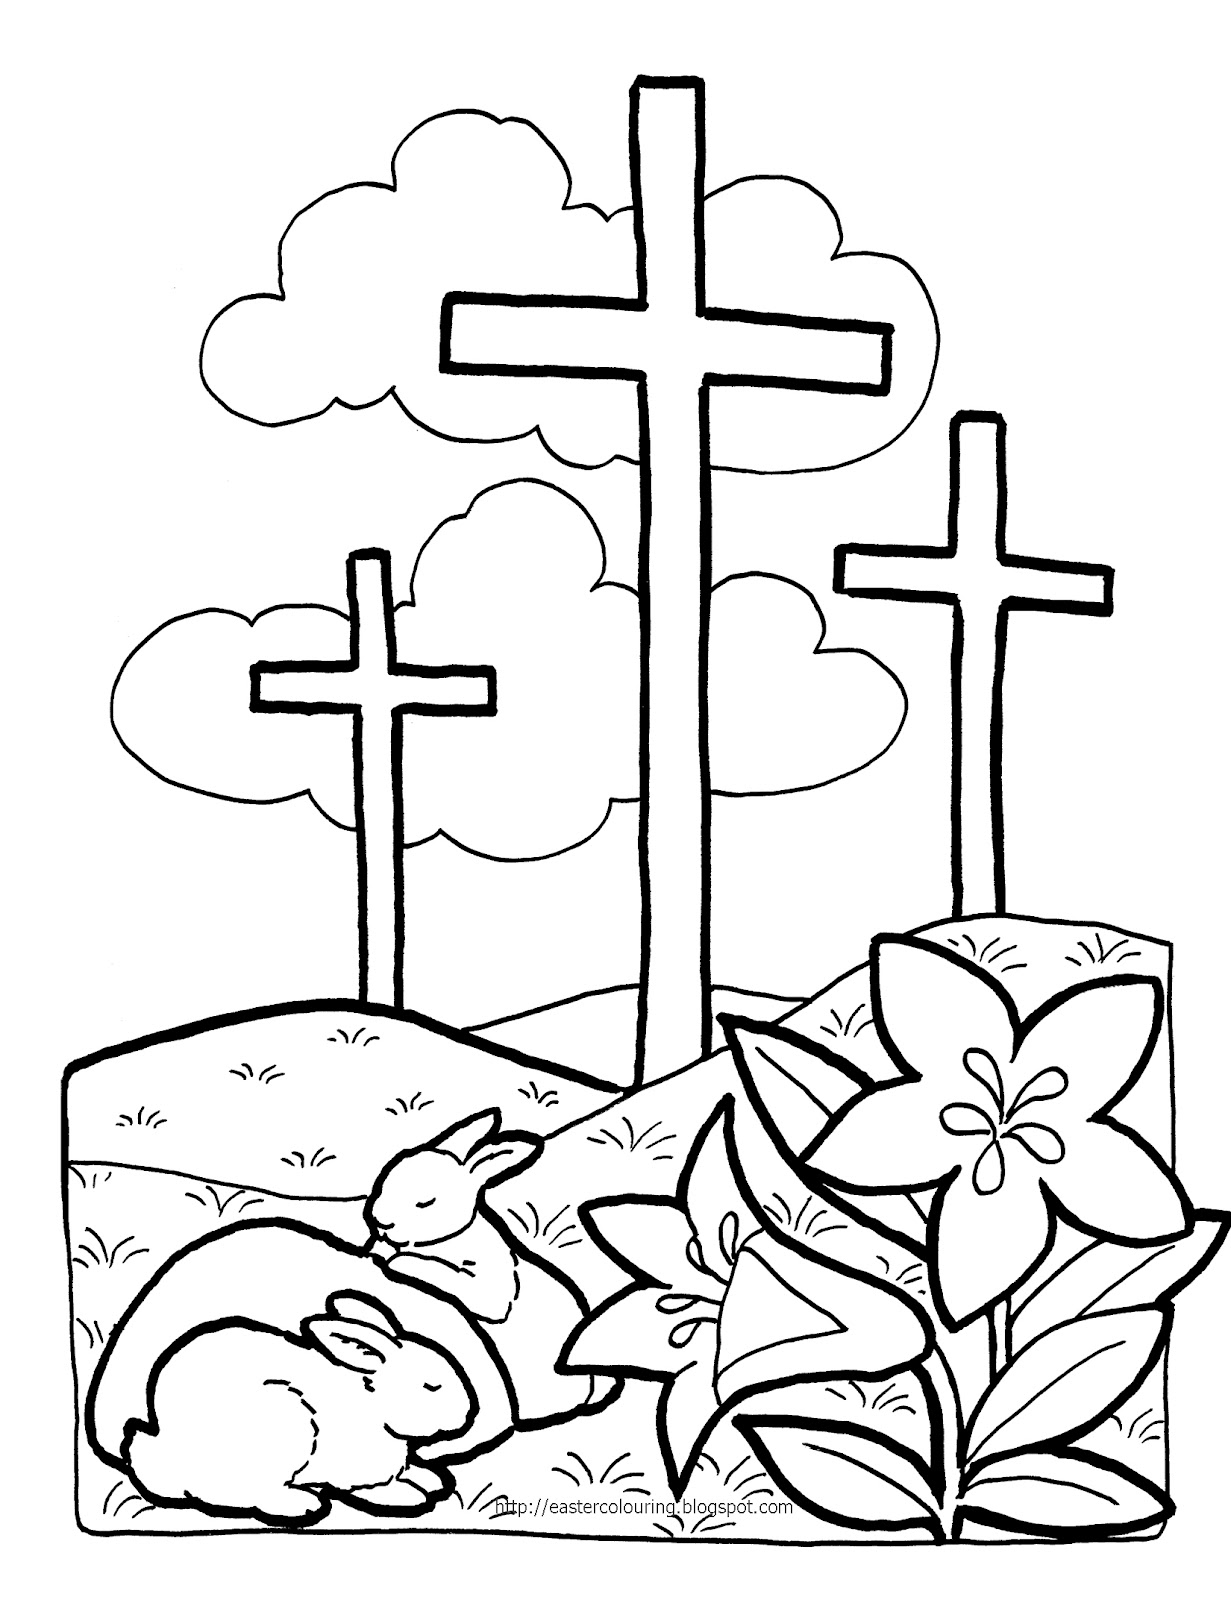 Easter coloring pages part 2 minnesota miranda for Easter coloring pages religious education